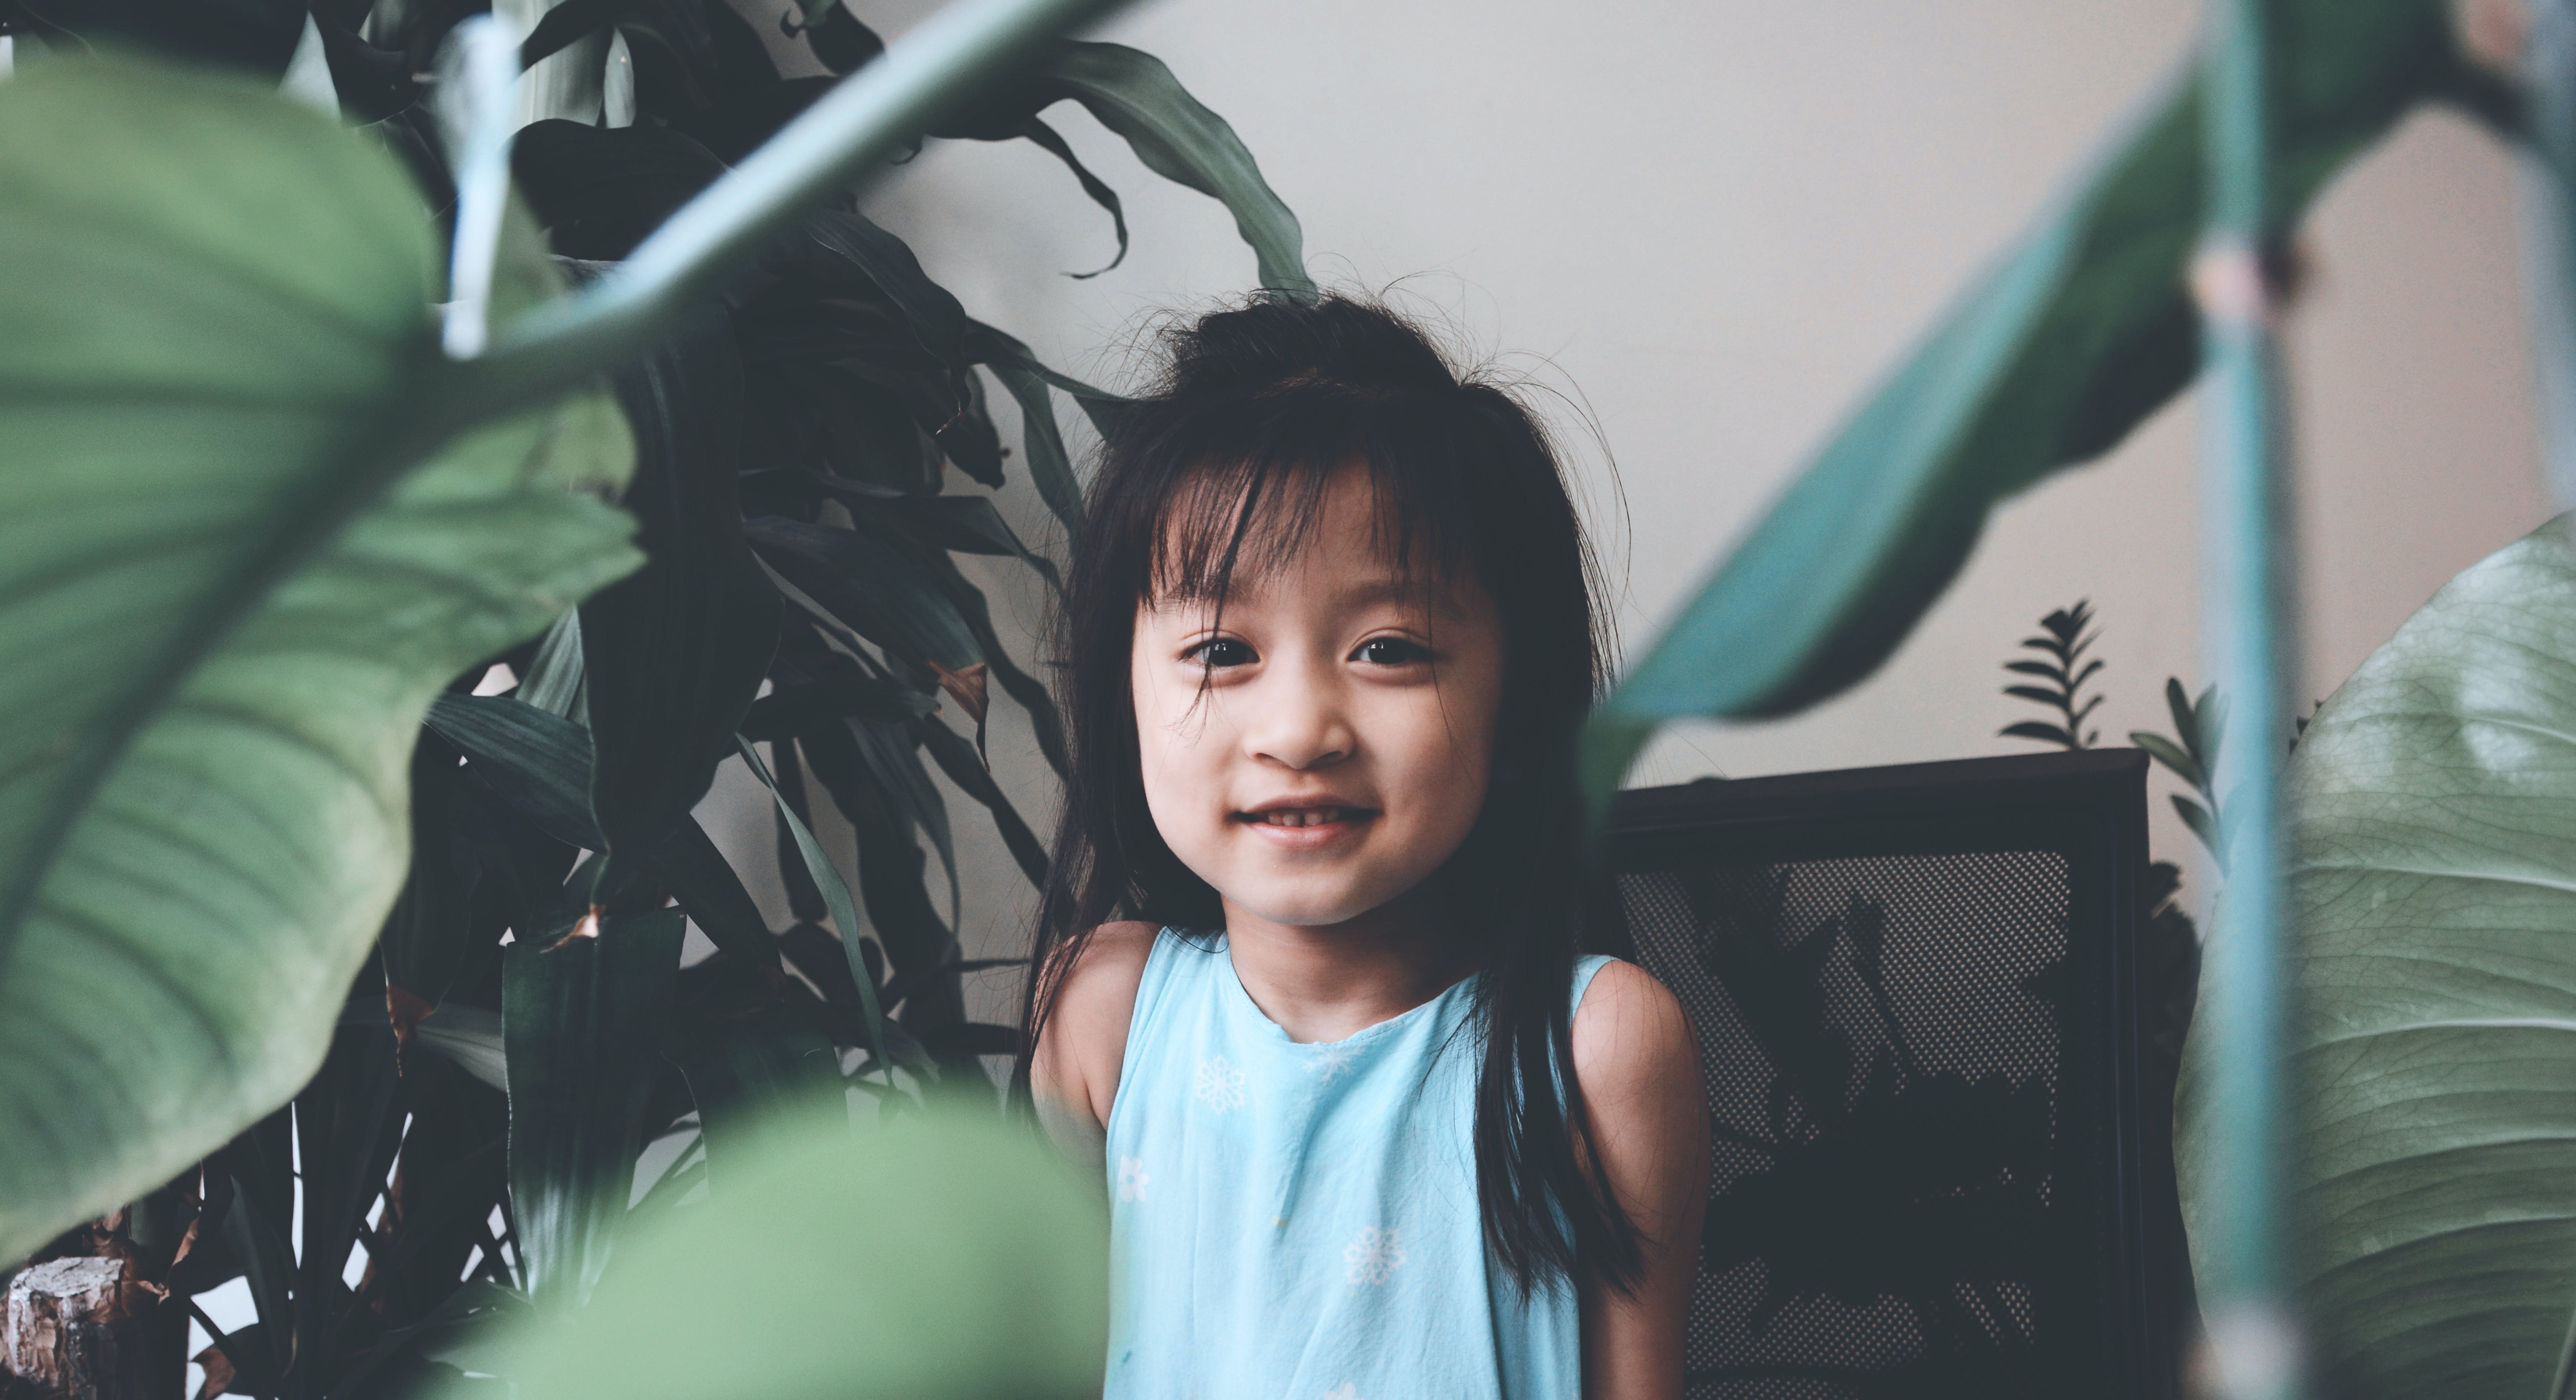 Smiling Girl Wearing Teal Tank Top Surrounded by Plants